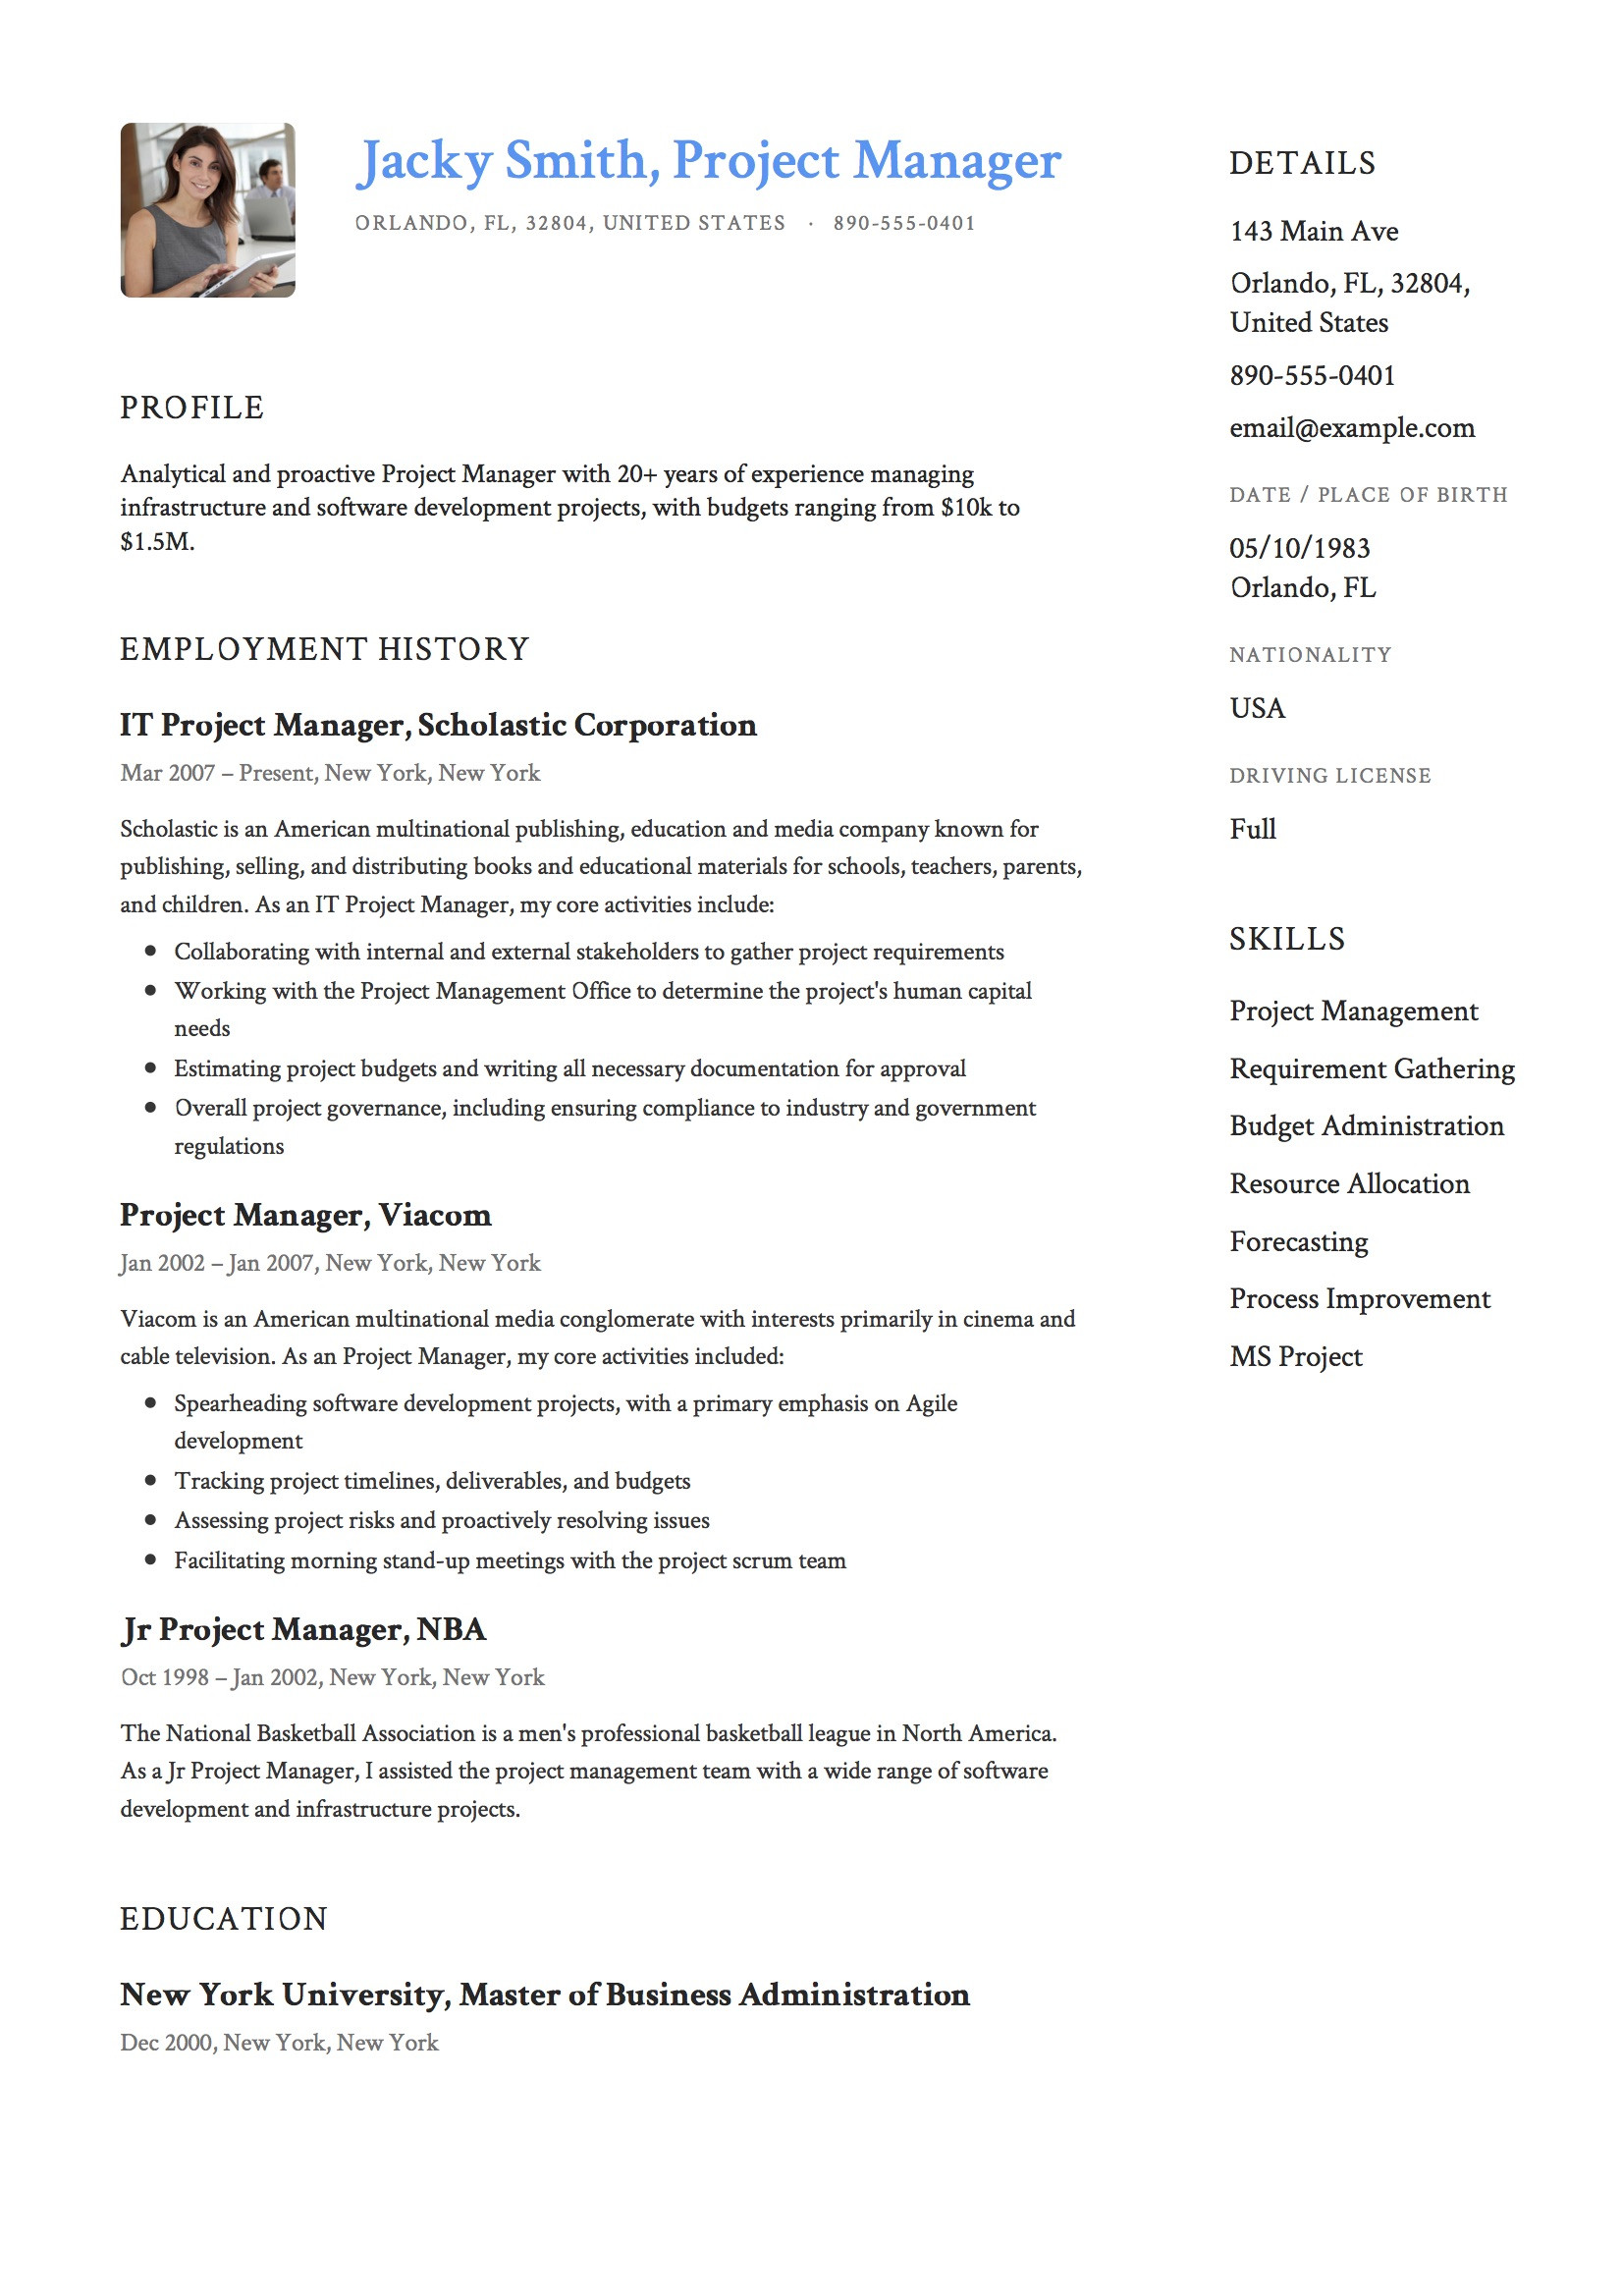 Junior Project Manager Resume Sample Doc 20 Project Manager Resume Examples & Full Guide Pdf & Word 2021